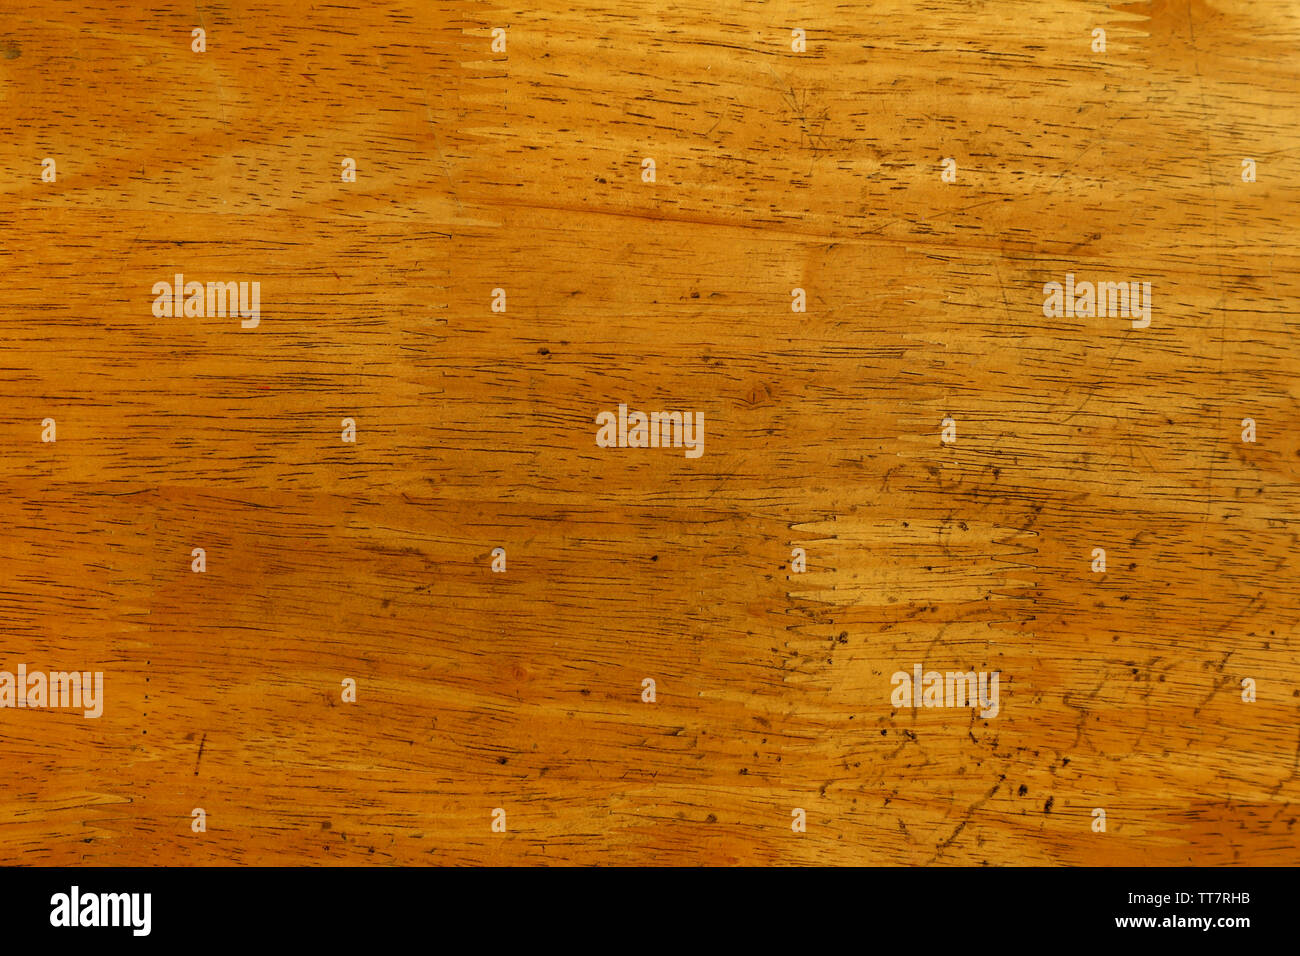 Photo of a wooden table texture - Stock Image